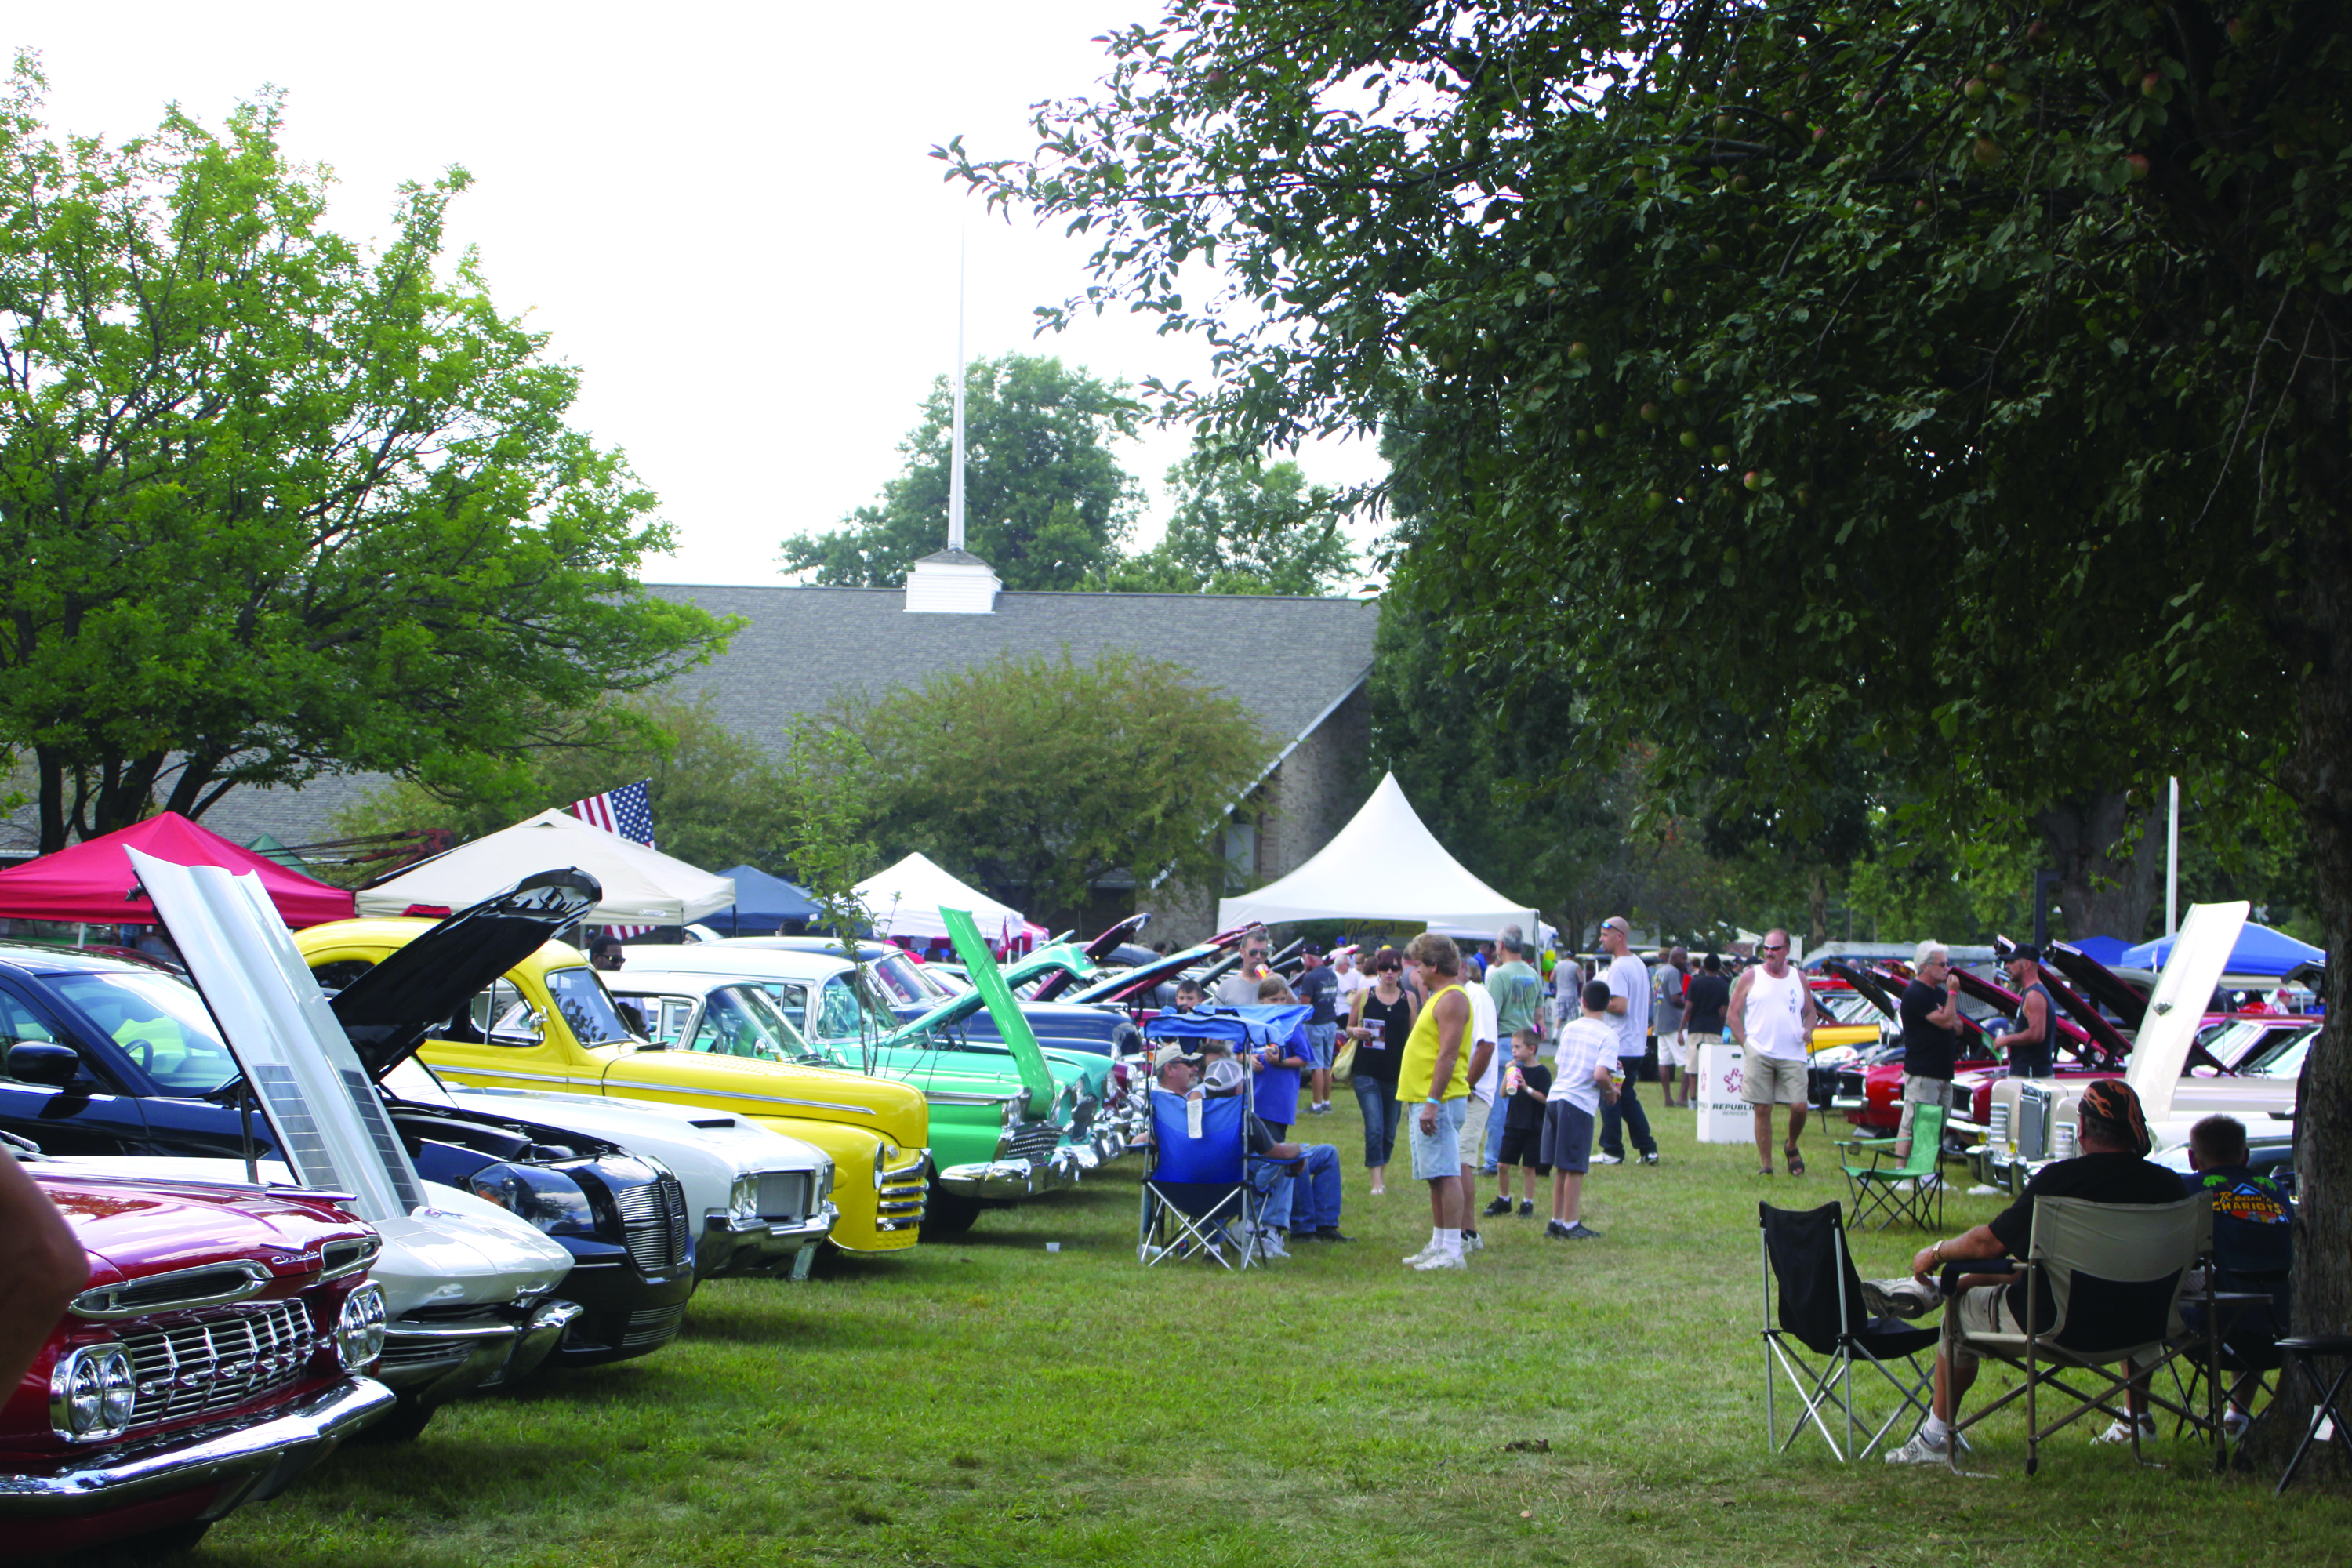 The Classic Car Show at Family Fun Fest 2013.